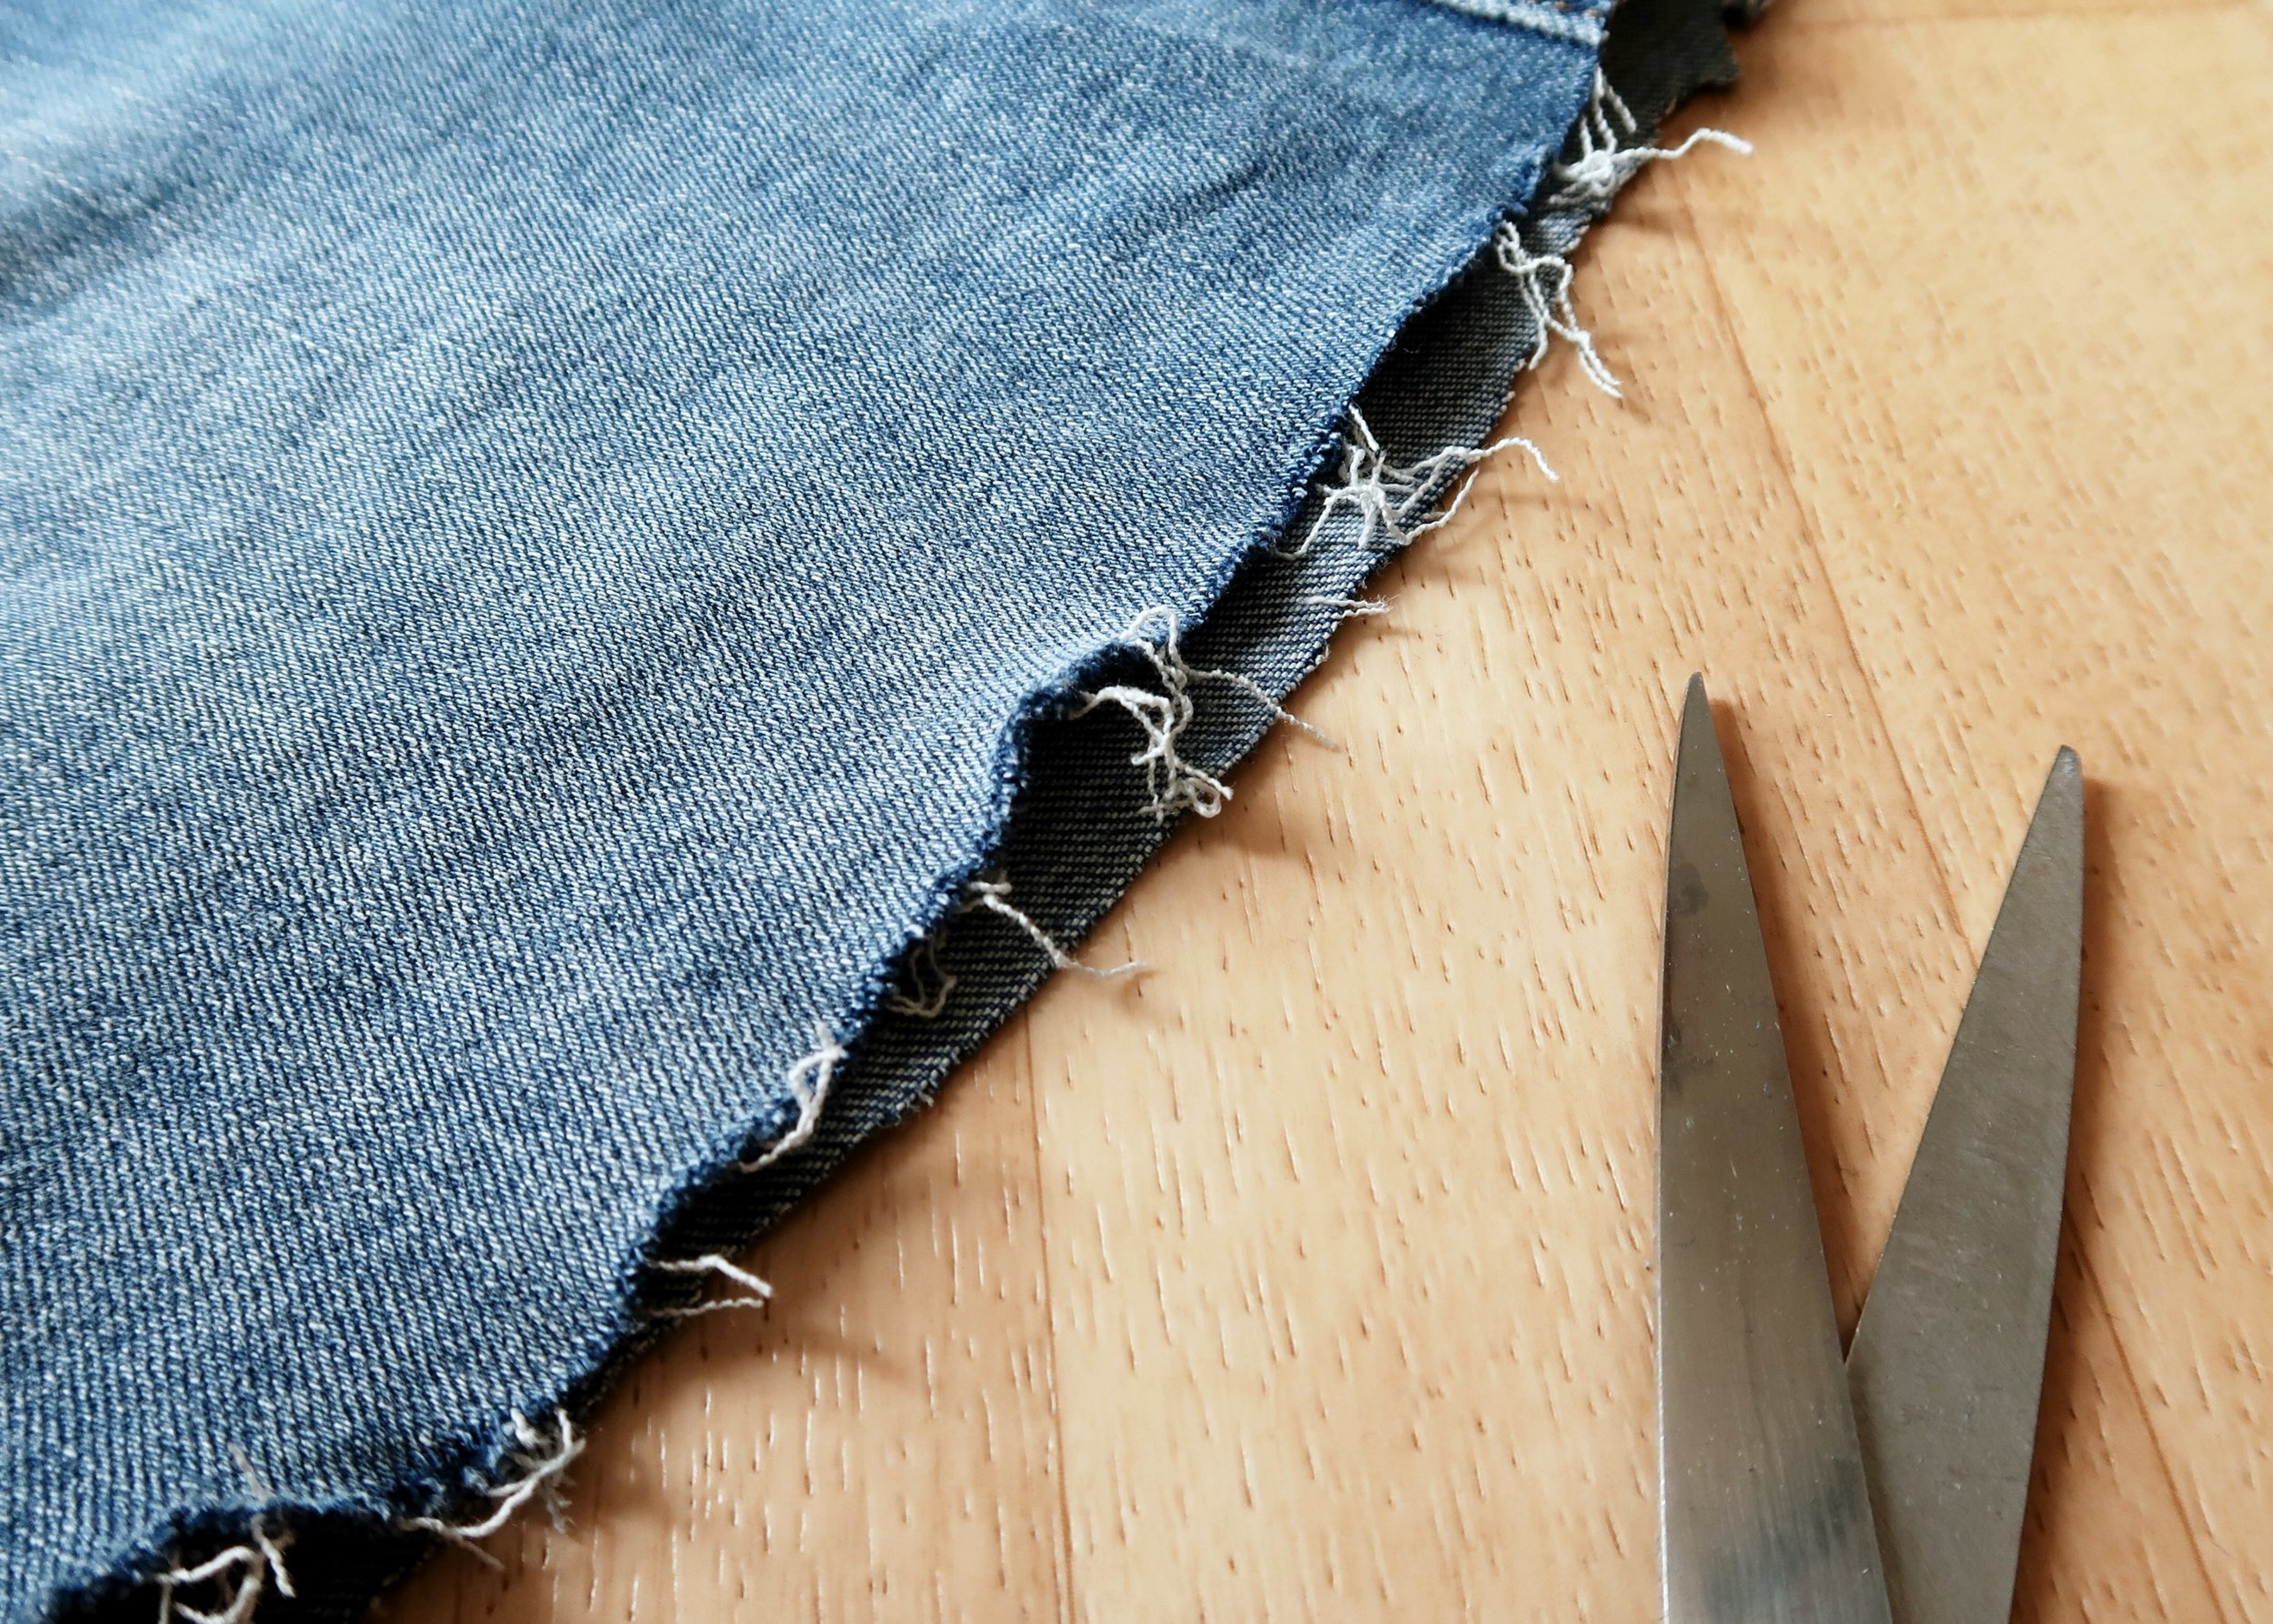 1. - First of all, you're going to want to cut your skirt to the length you want. Once you're happy with the length, use your scissors to sort of 'scour' the edges and fray the hem. This will give you a nice raw hem effect.